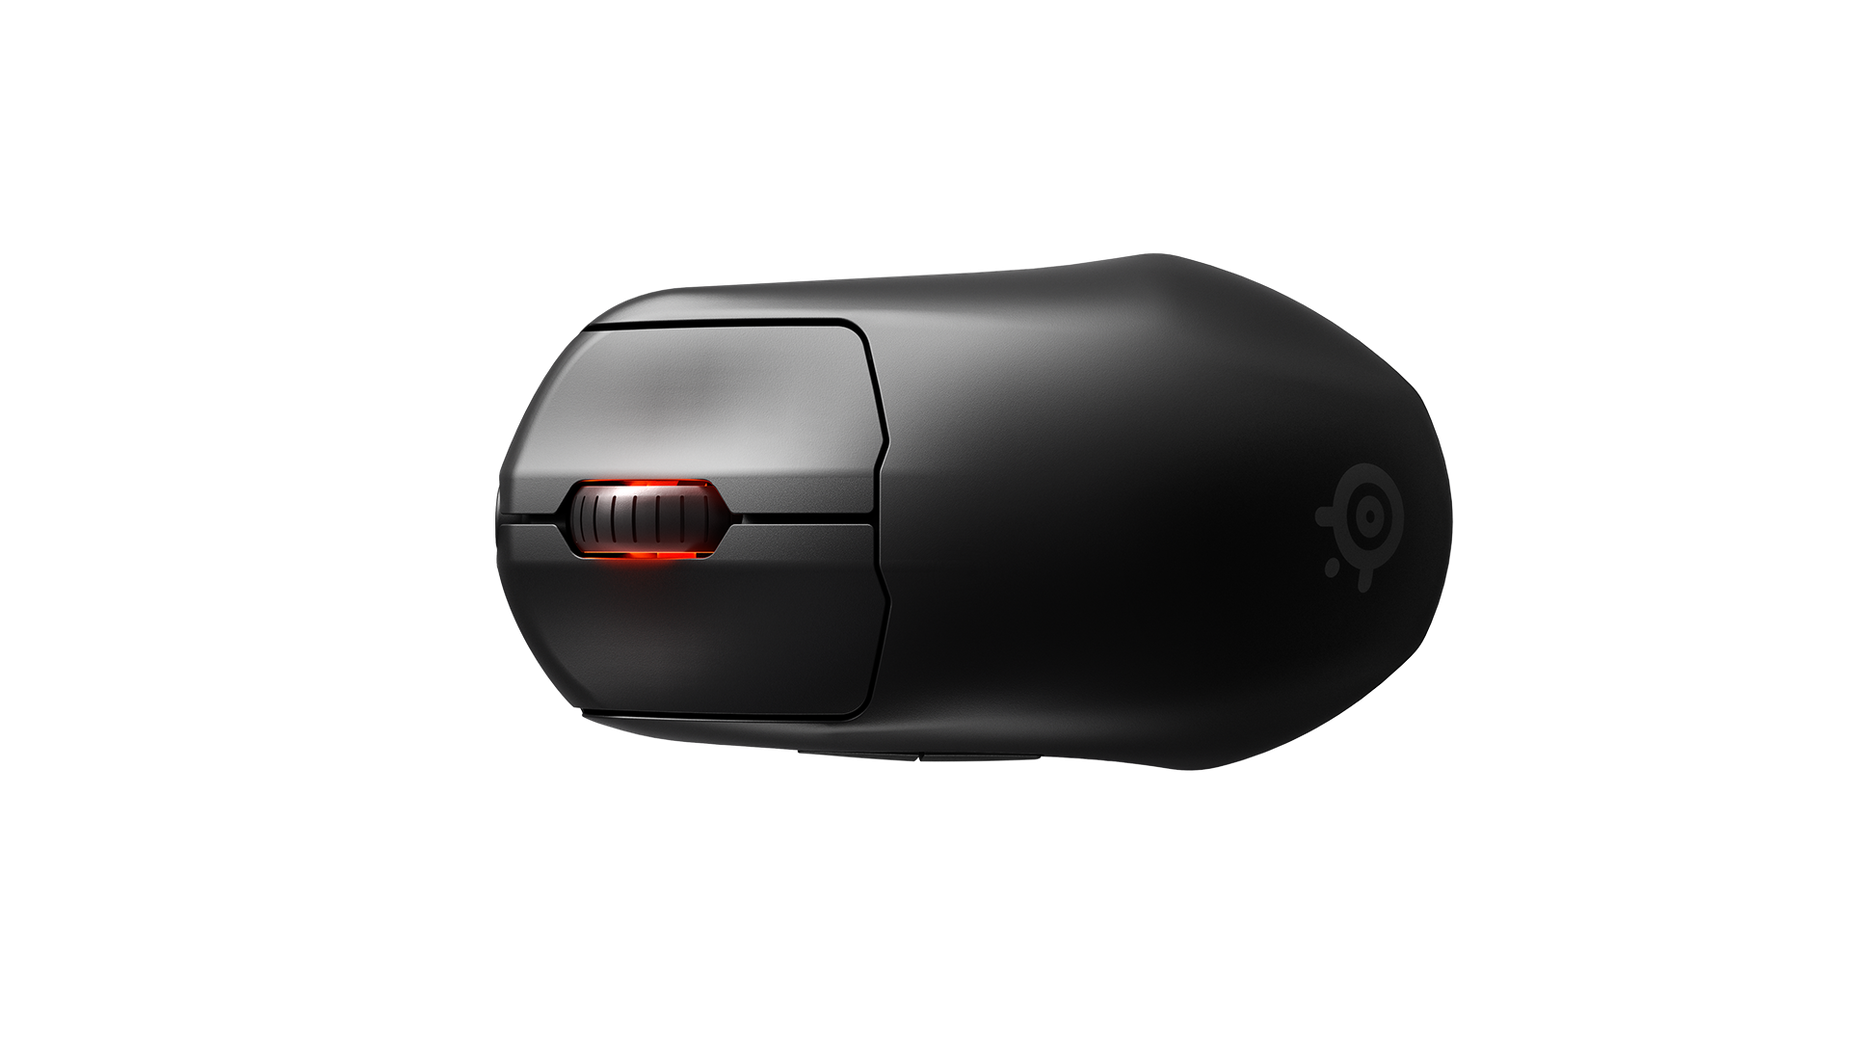 A top-down view of the Prime Wireless mouse.